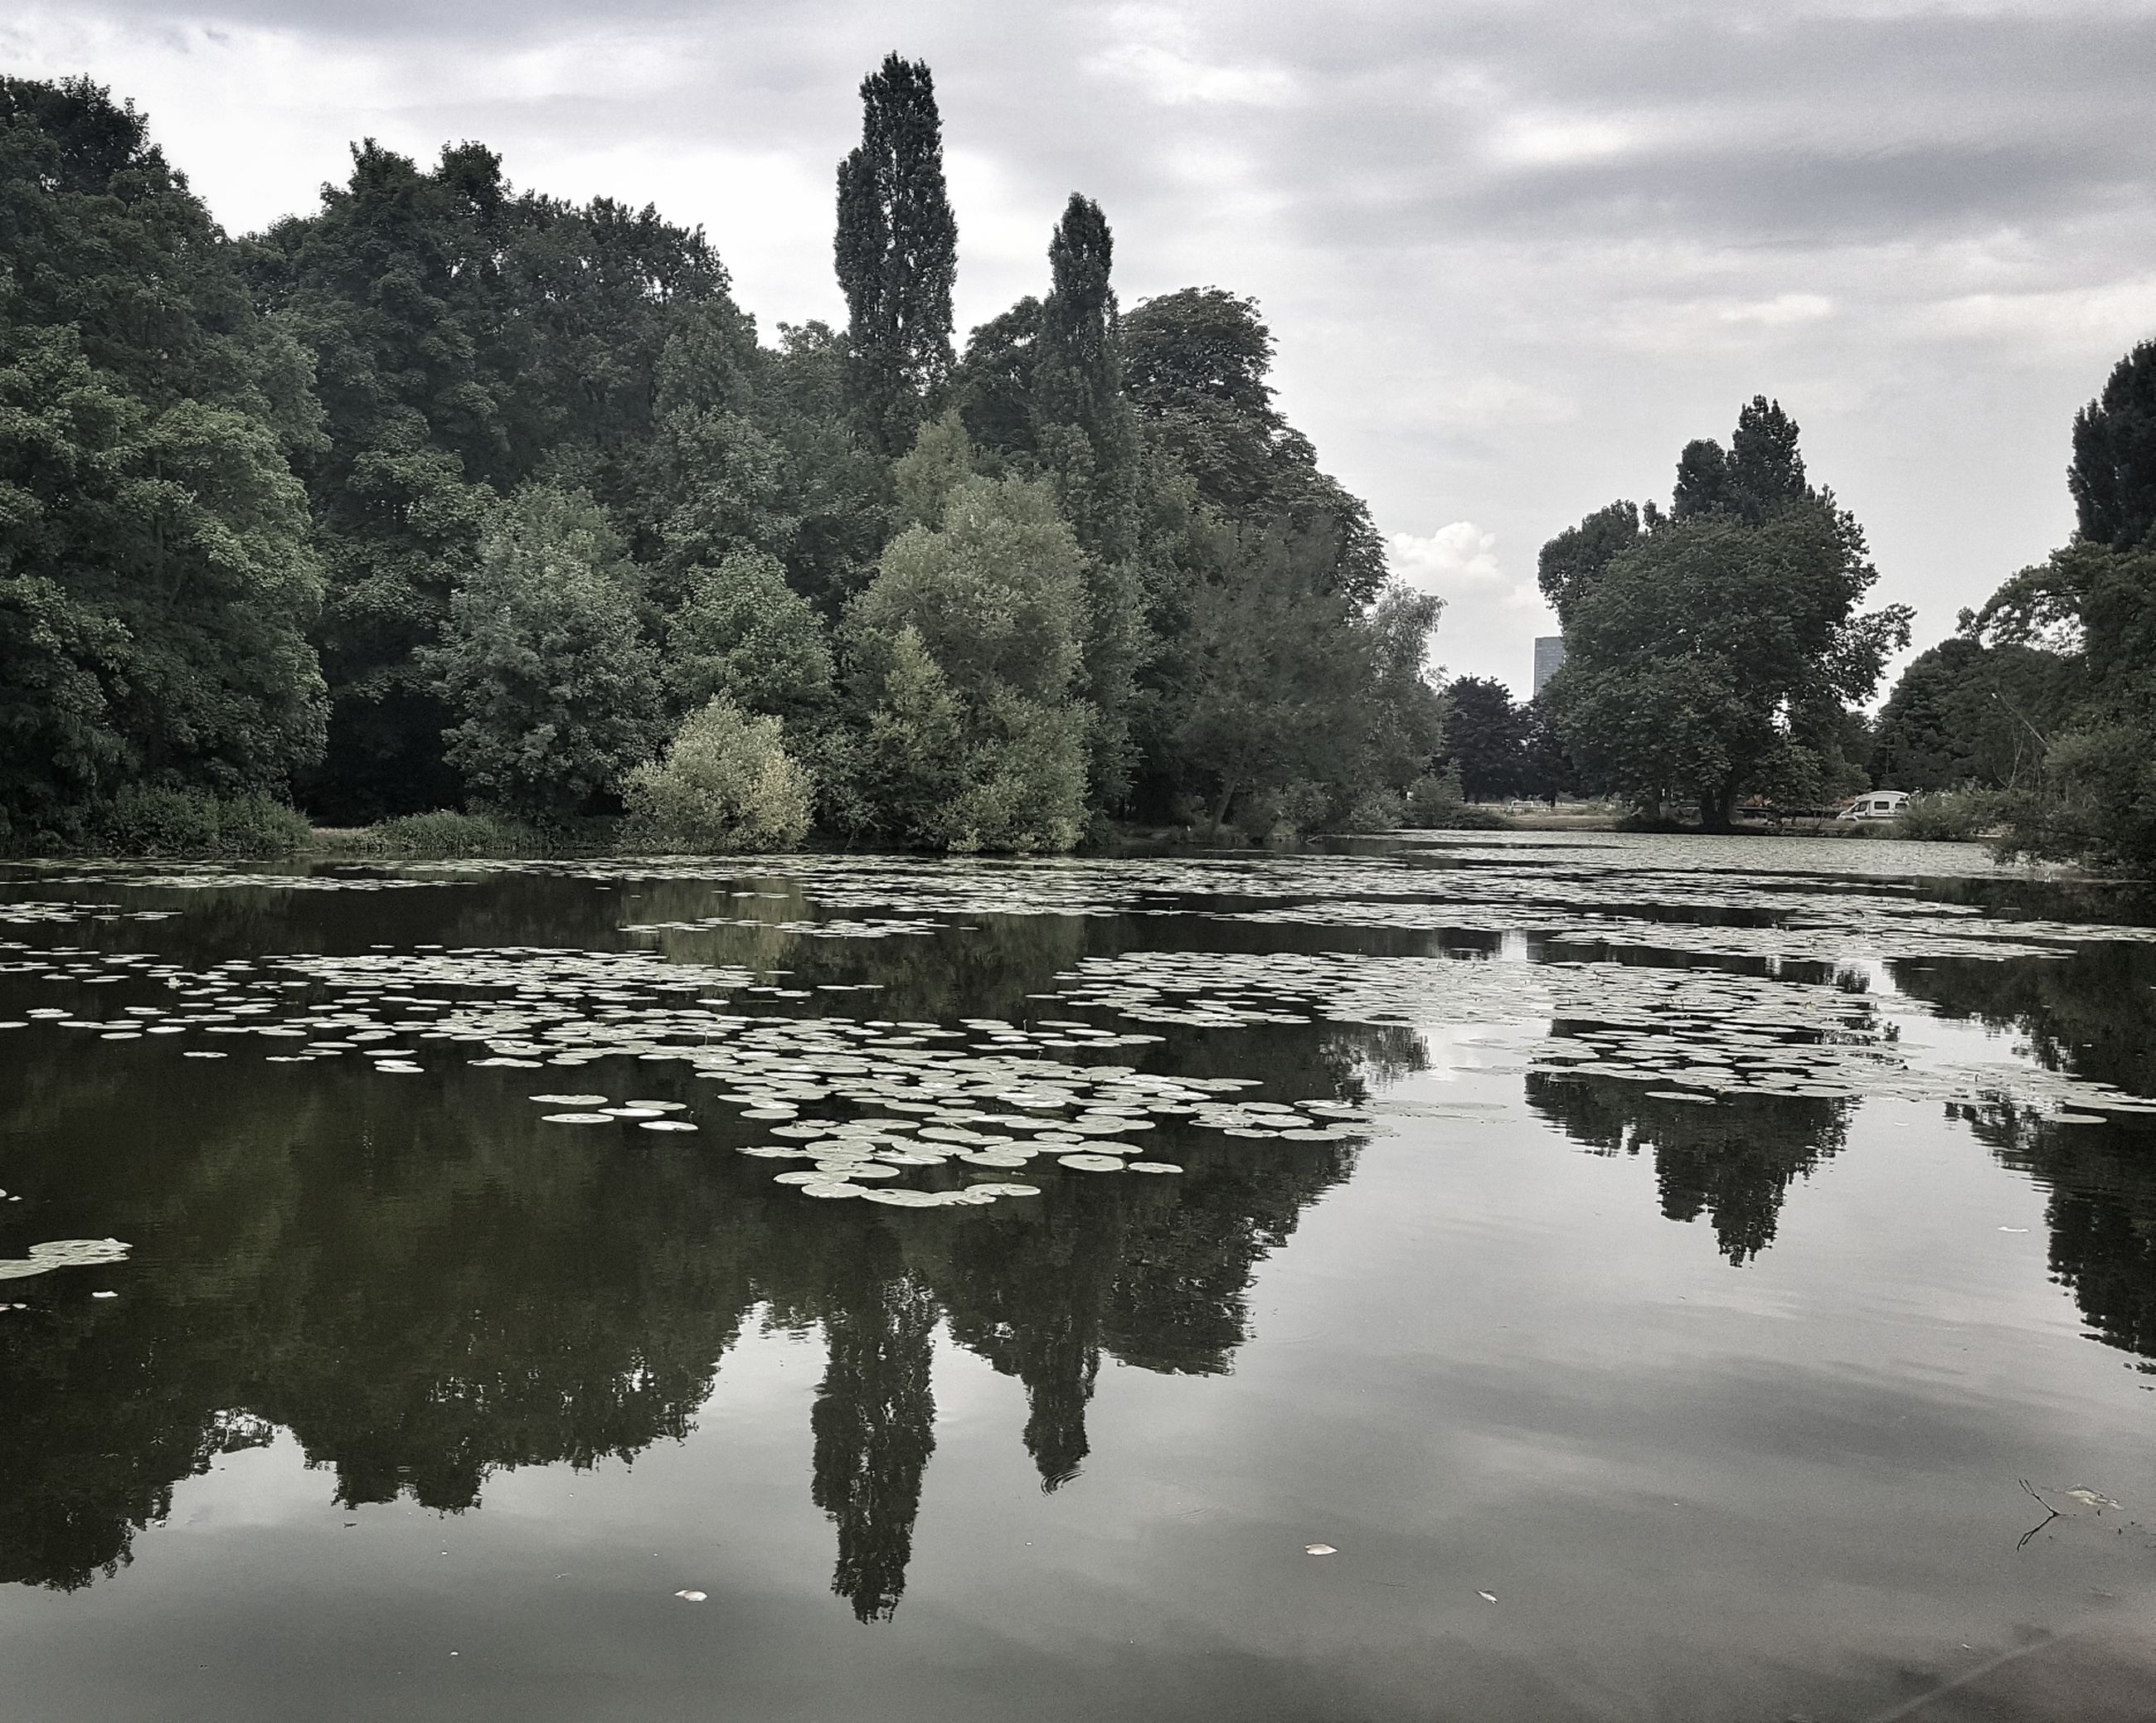 tree, reflection, water, sky, lake, tranquil scene, tranquility, nature, no people, scenics, waterfront, outdoors, beauty in nature, growth, day, cloud - sky